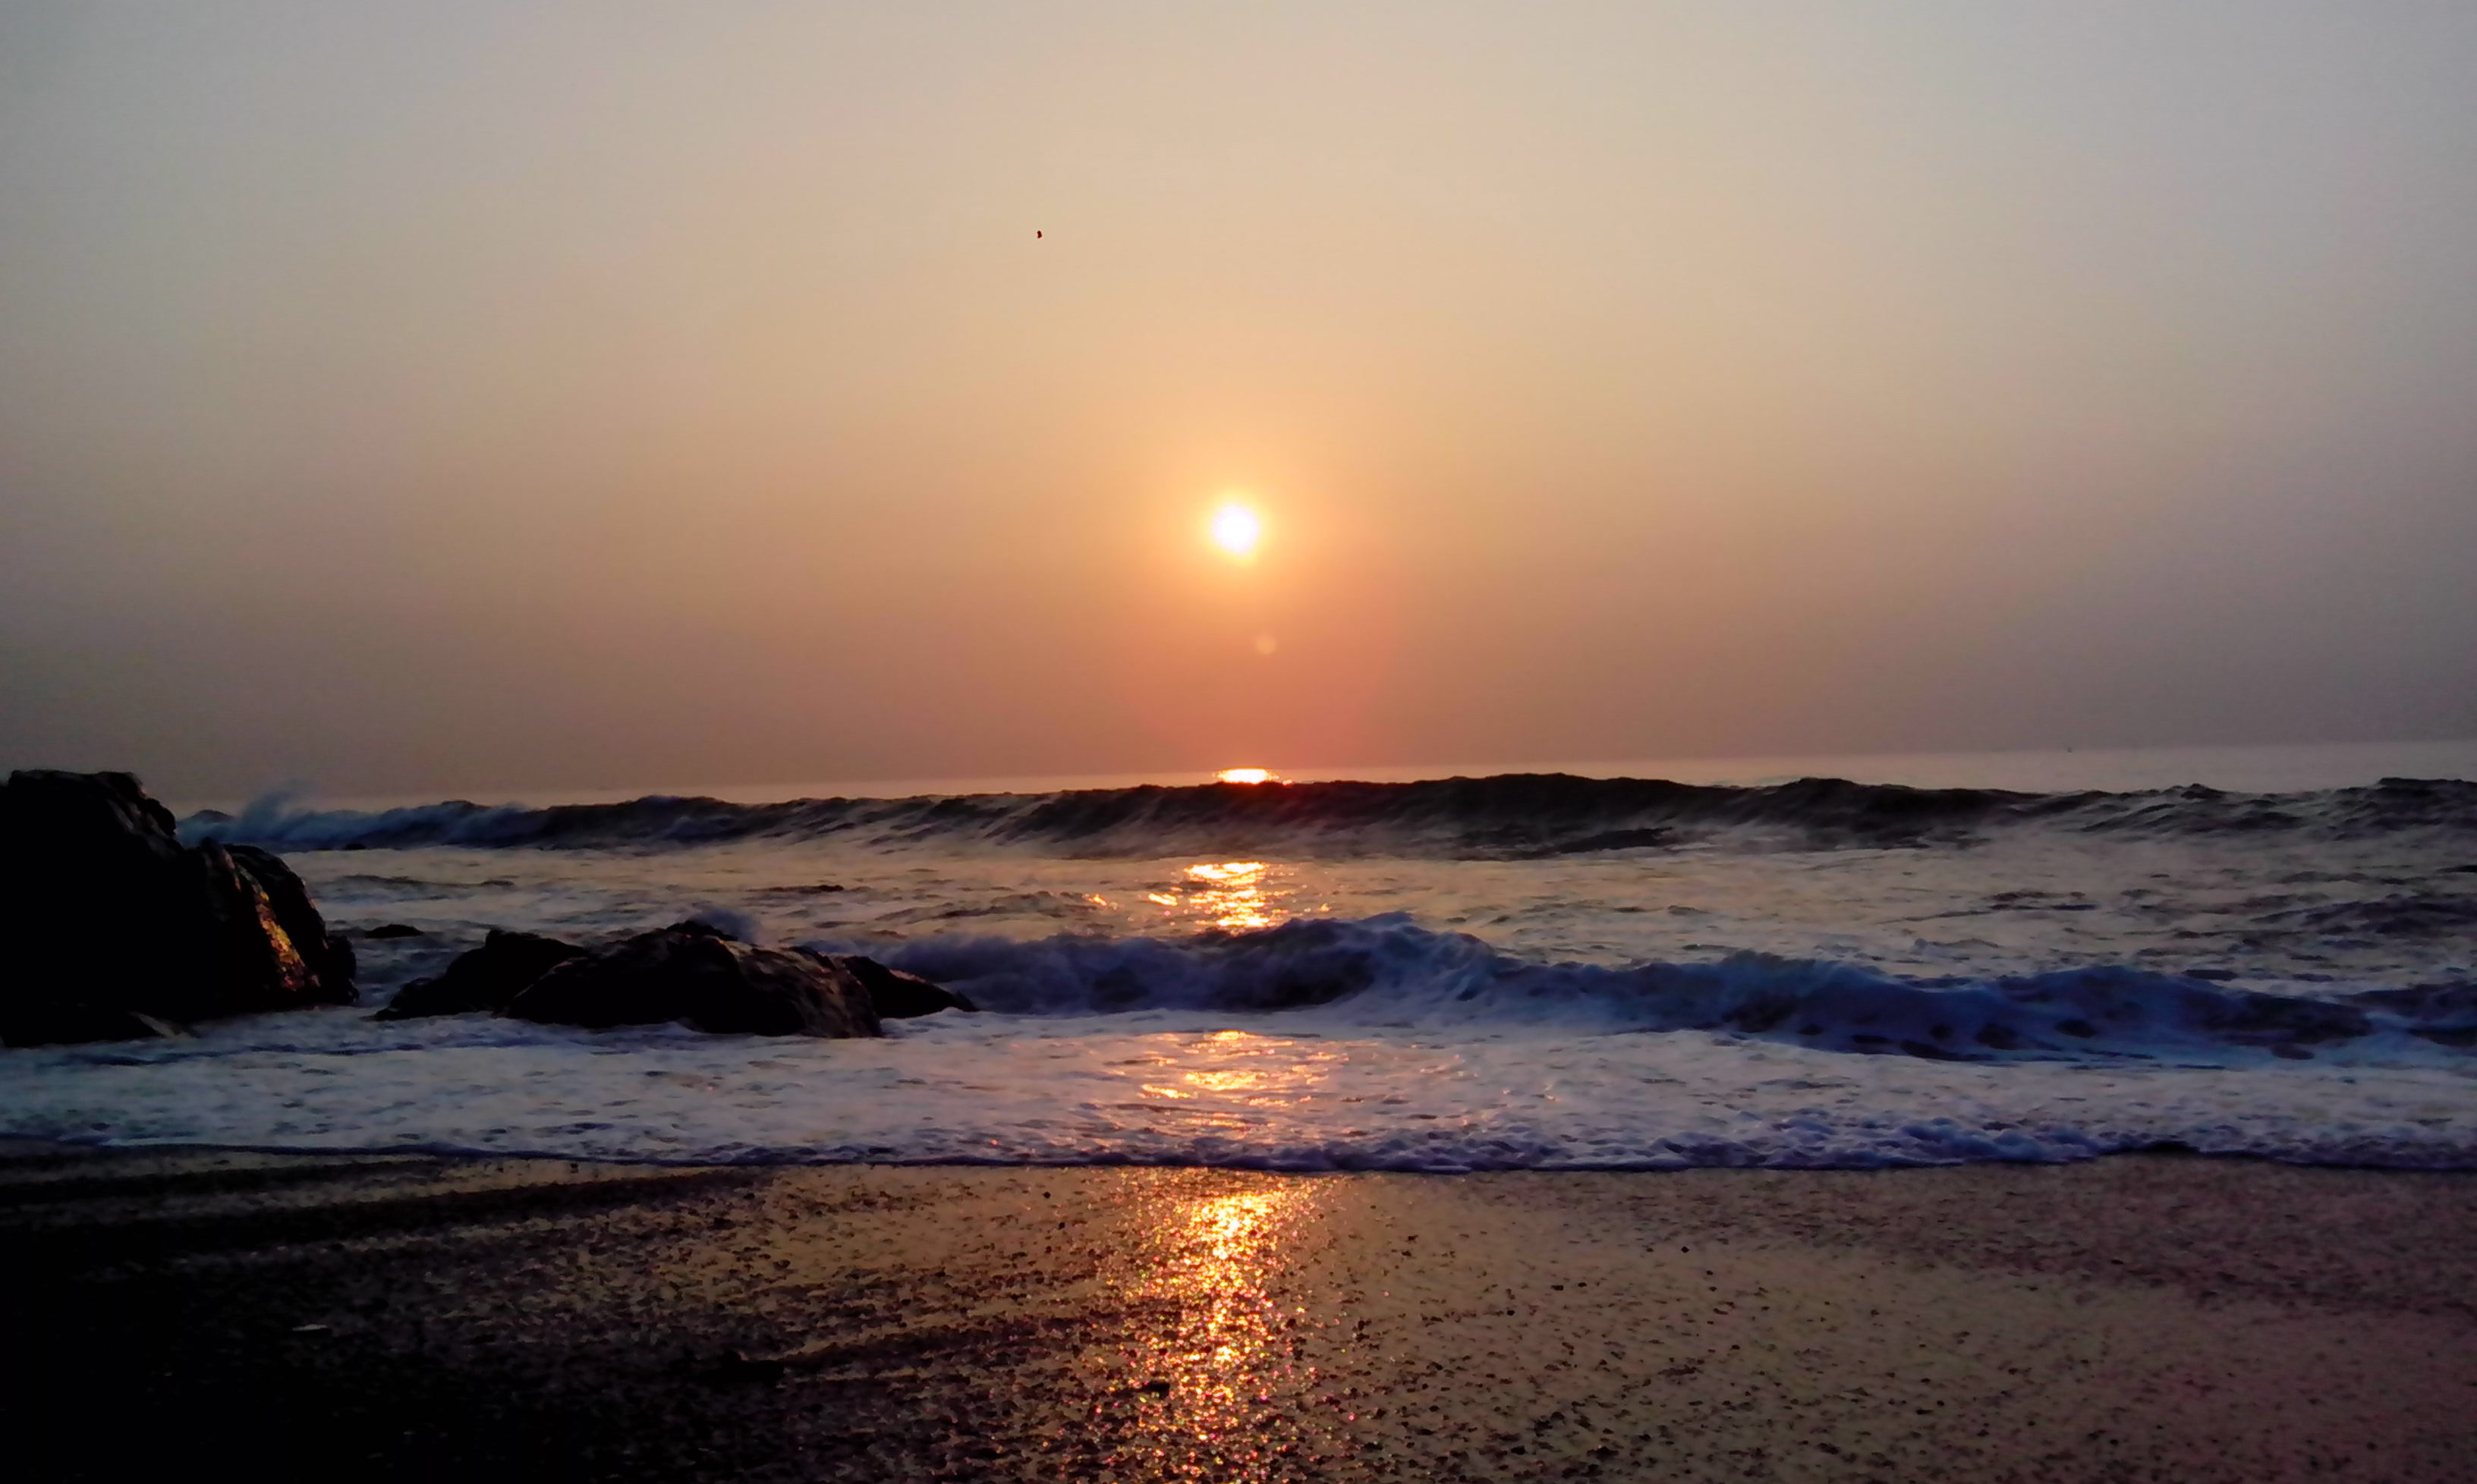 sunrise_over_bay_of_bengal_at_rk_beach_011